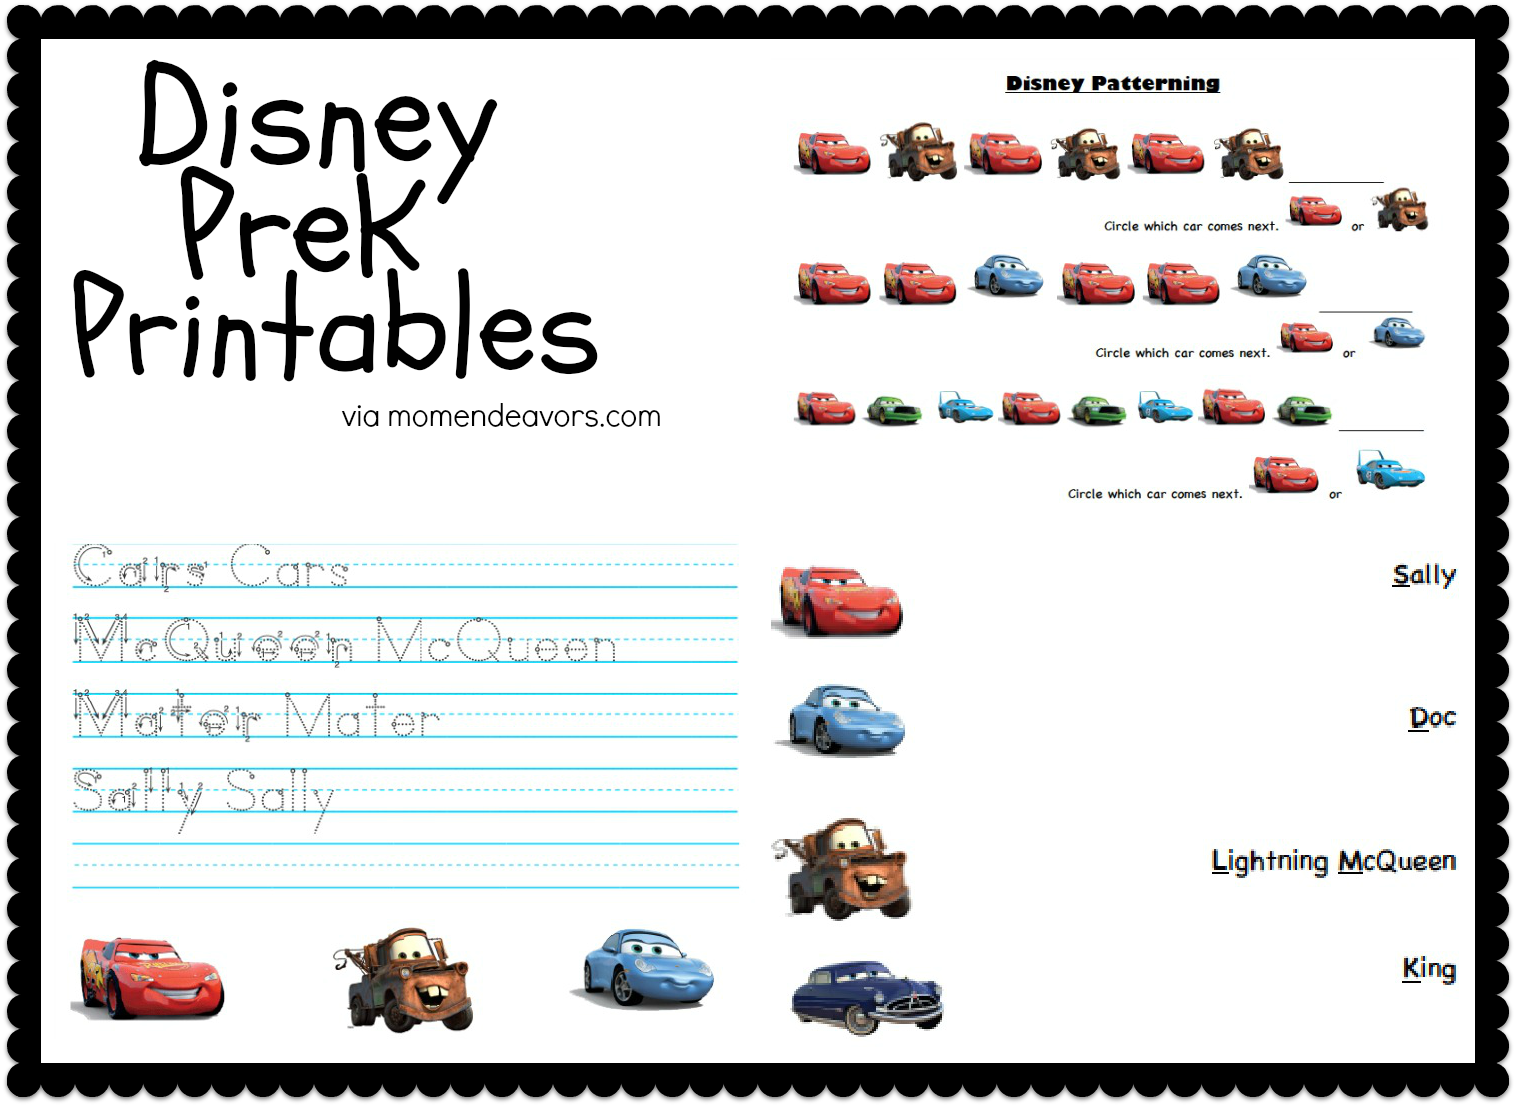 disney pixar cars prek printable activity sheets travel tuesday - Preschool Printable Activities